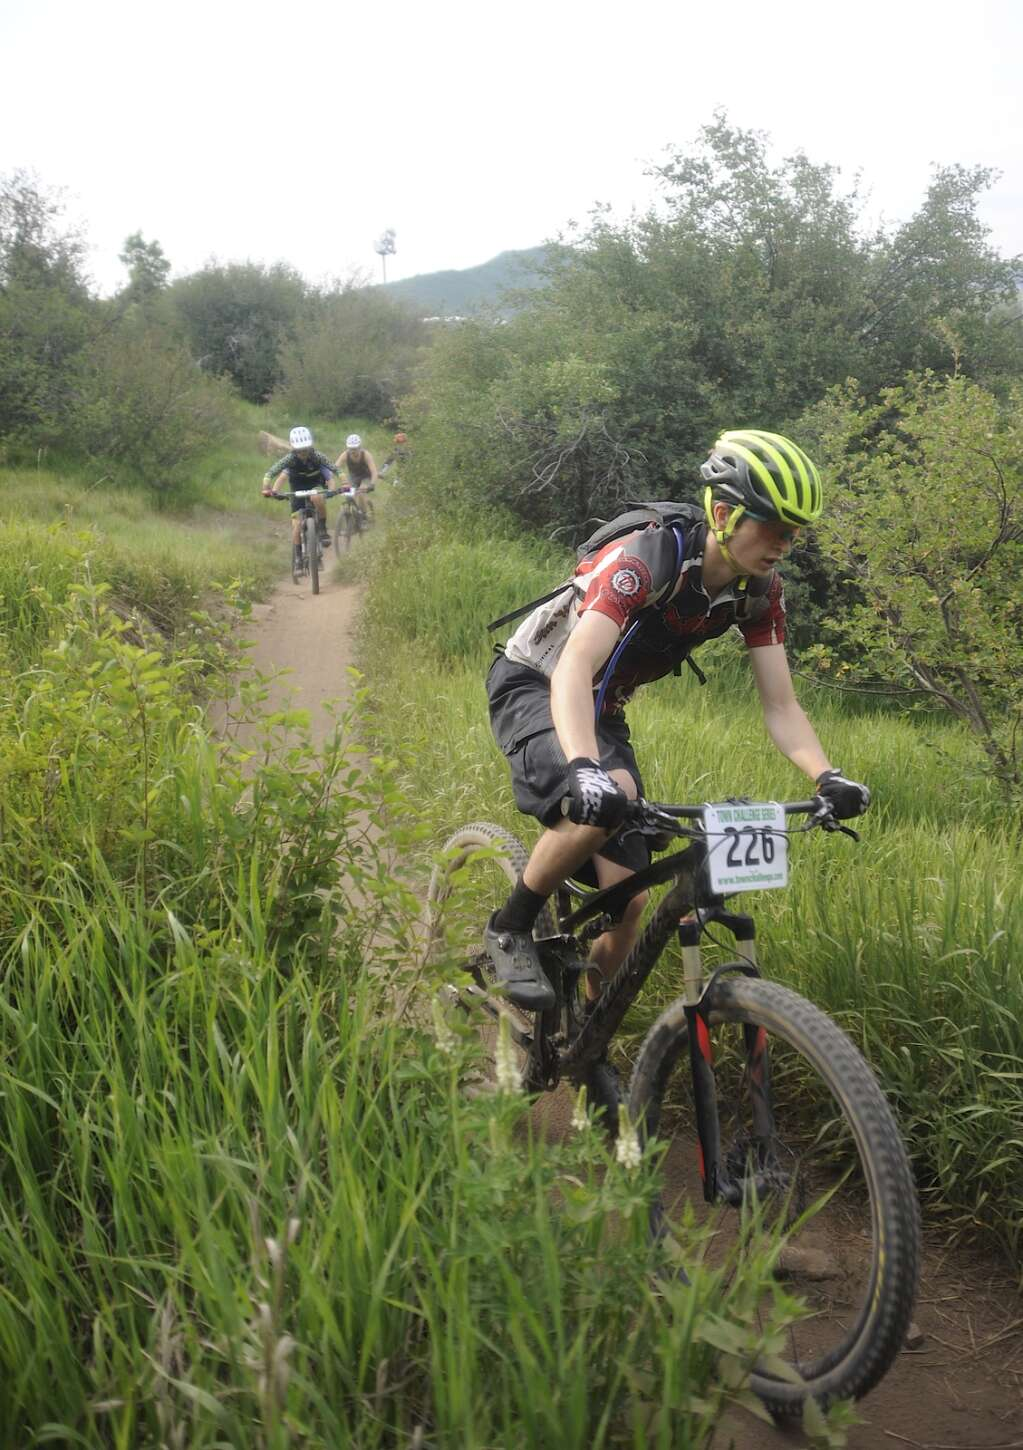 The sport group navigates the singletrack at the Town Challenge Emerald Endurance race on Wednesday evening. (Photo by Shelby Reardon)